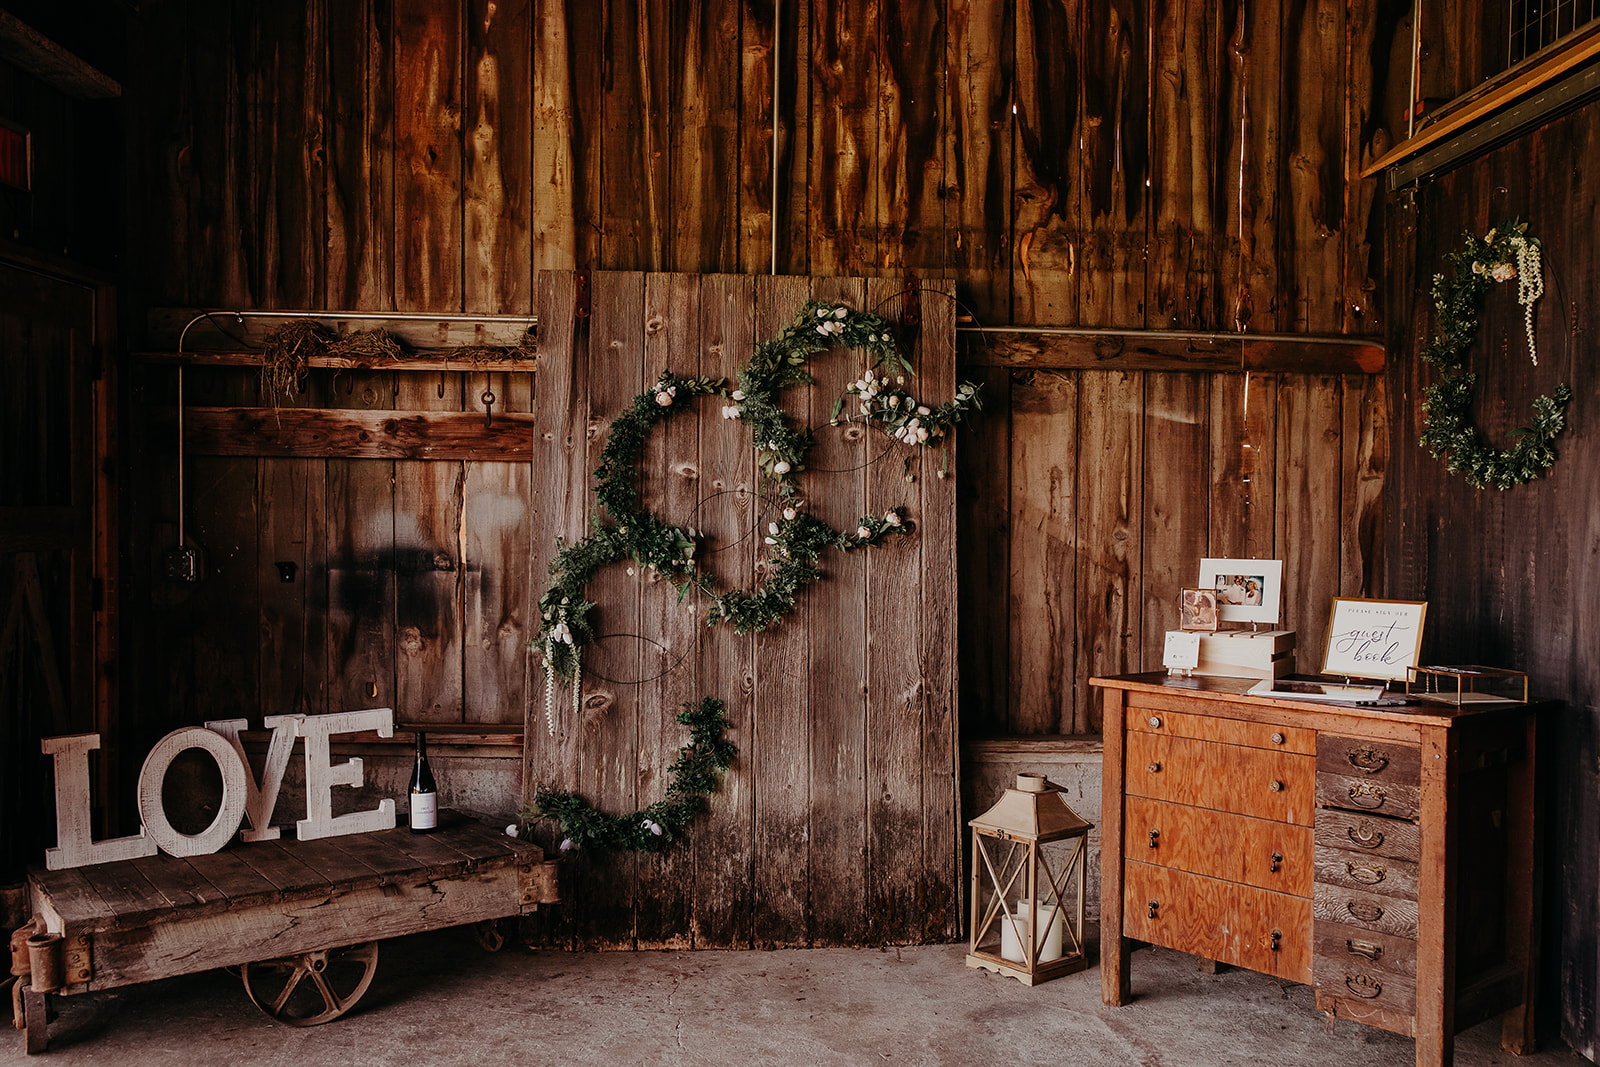 mount-vernon-wedding-salt-box-barn-amanda-riley-megan-gallagher-photography-2_(146_of_215).jpg